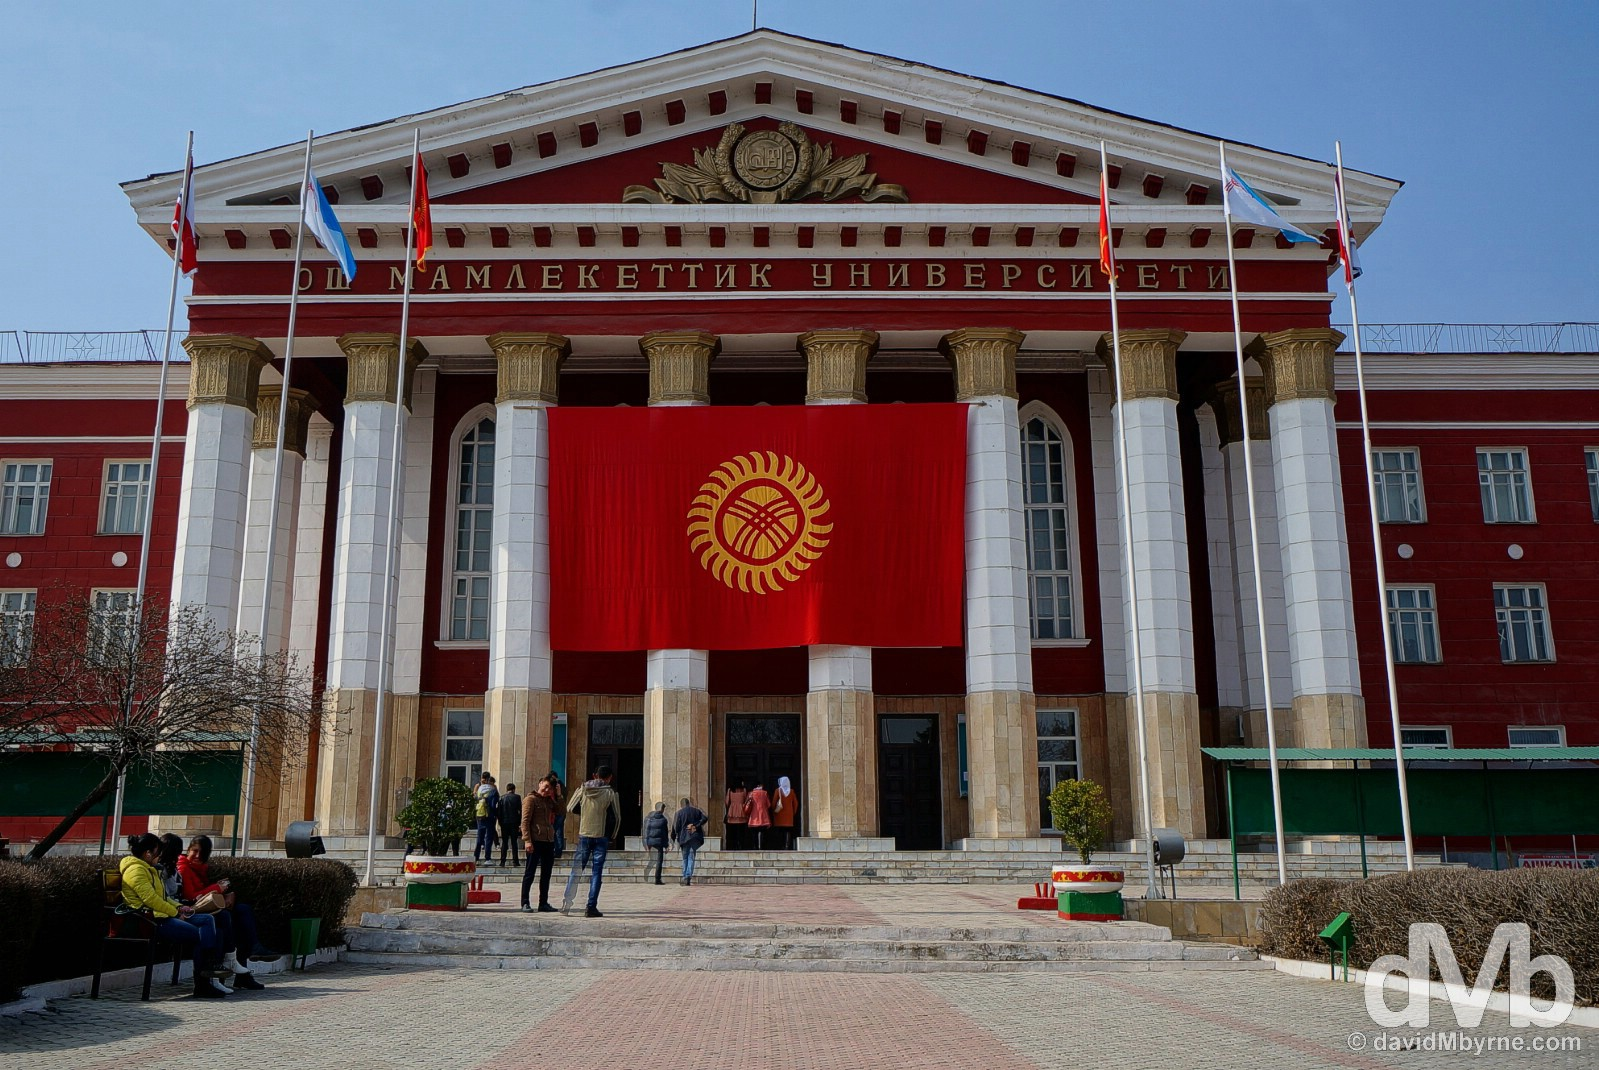 University building in Osh, southern Kyrgyzstan. March 3, 2015.